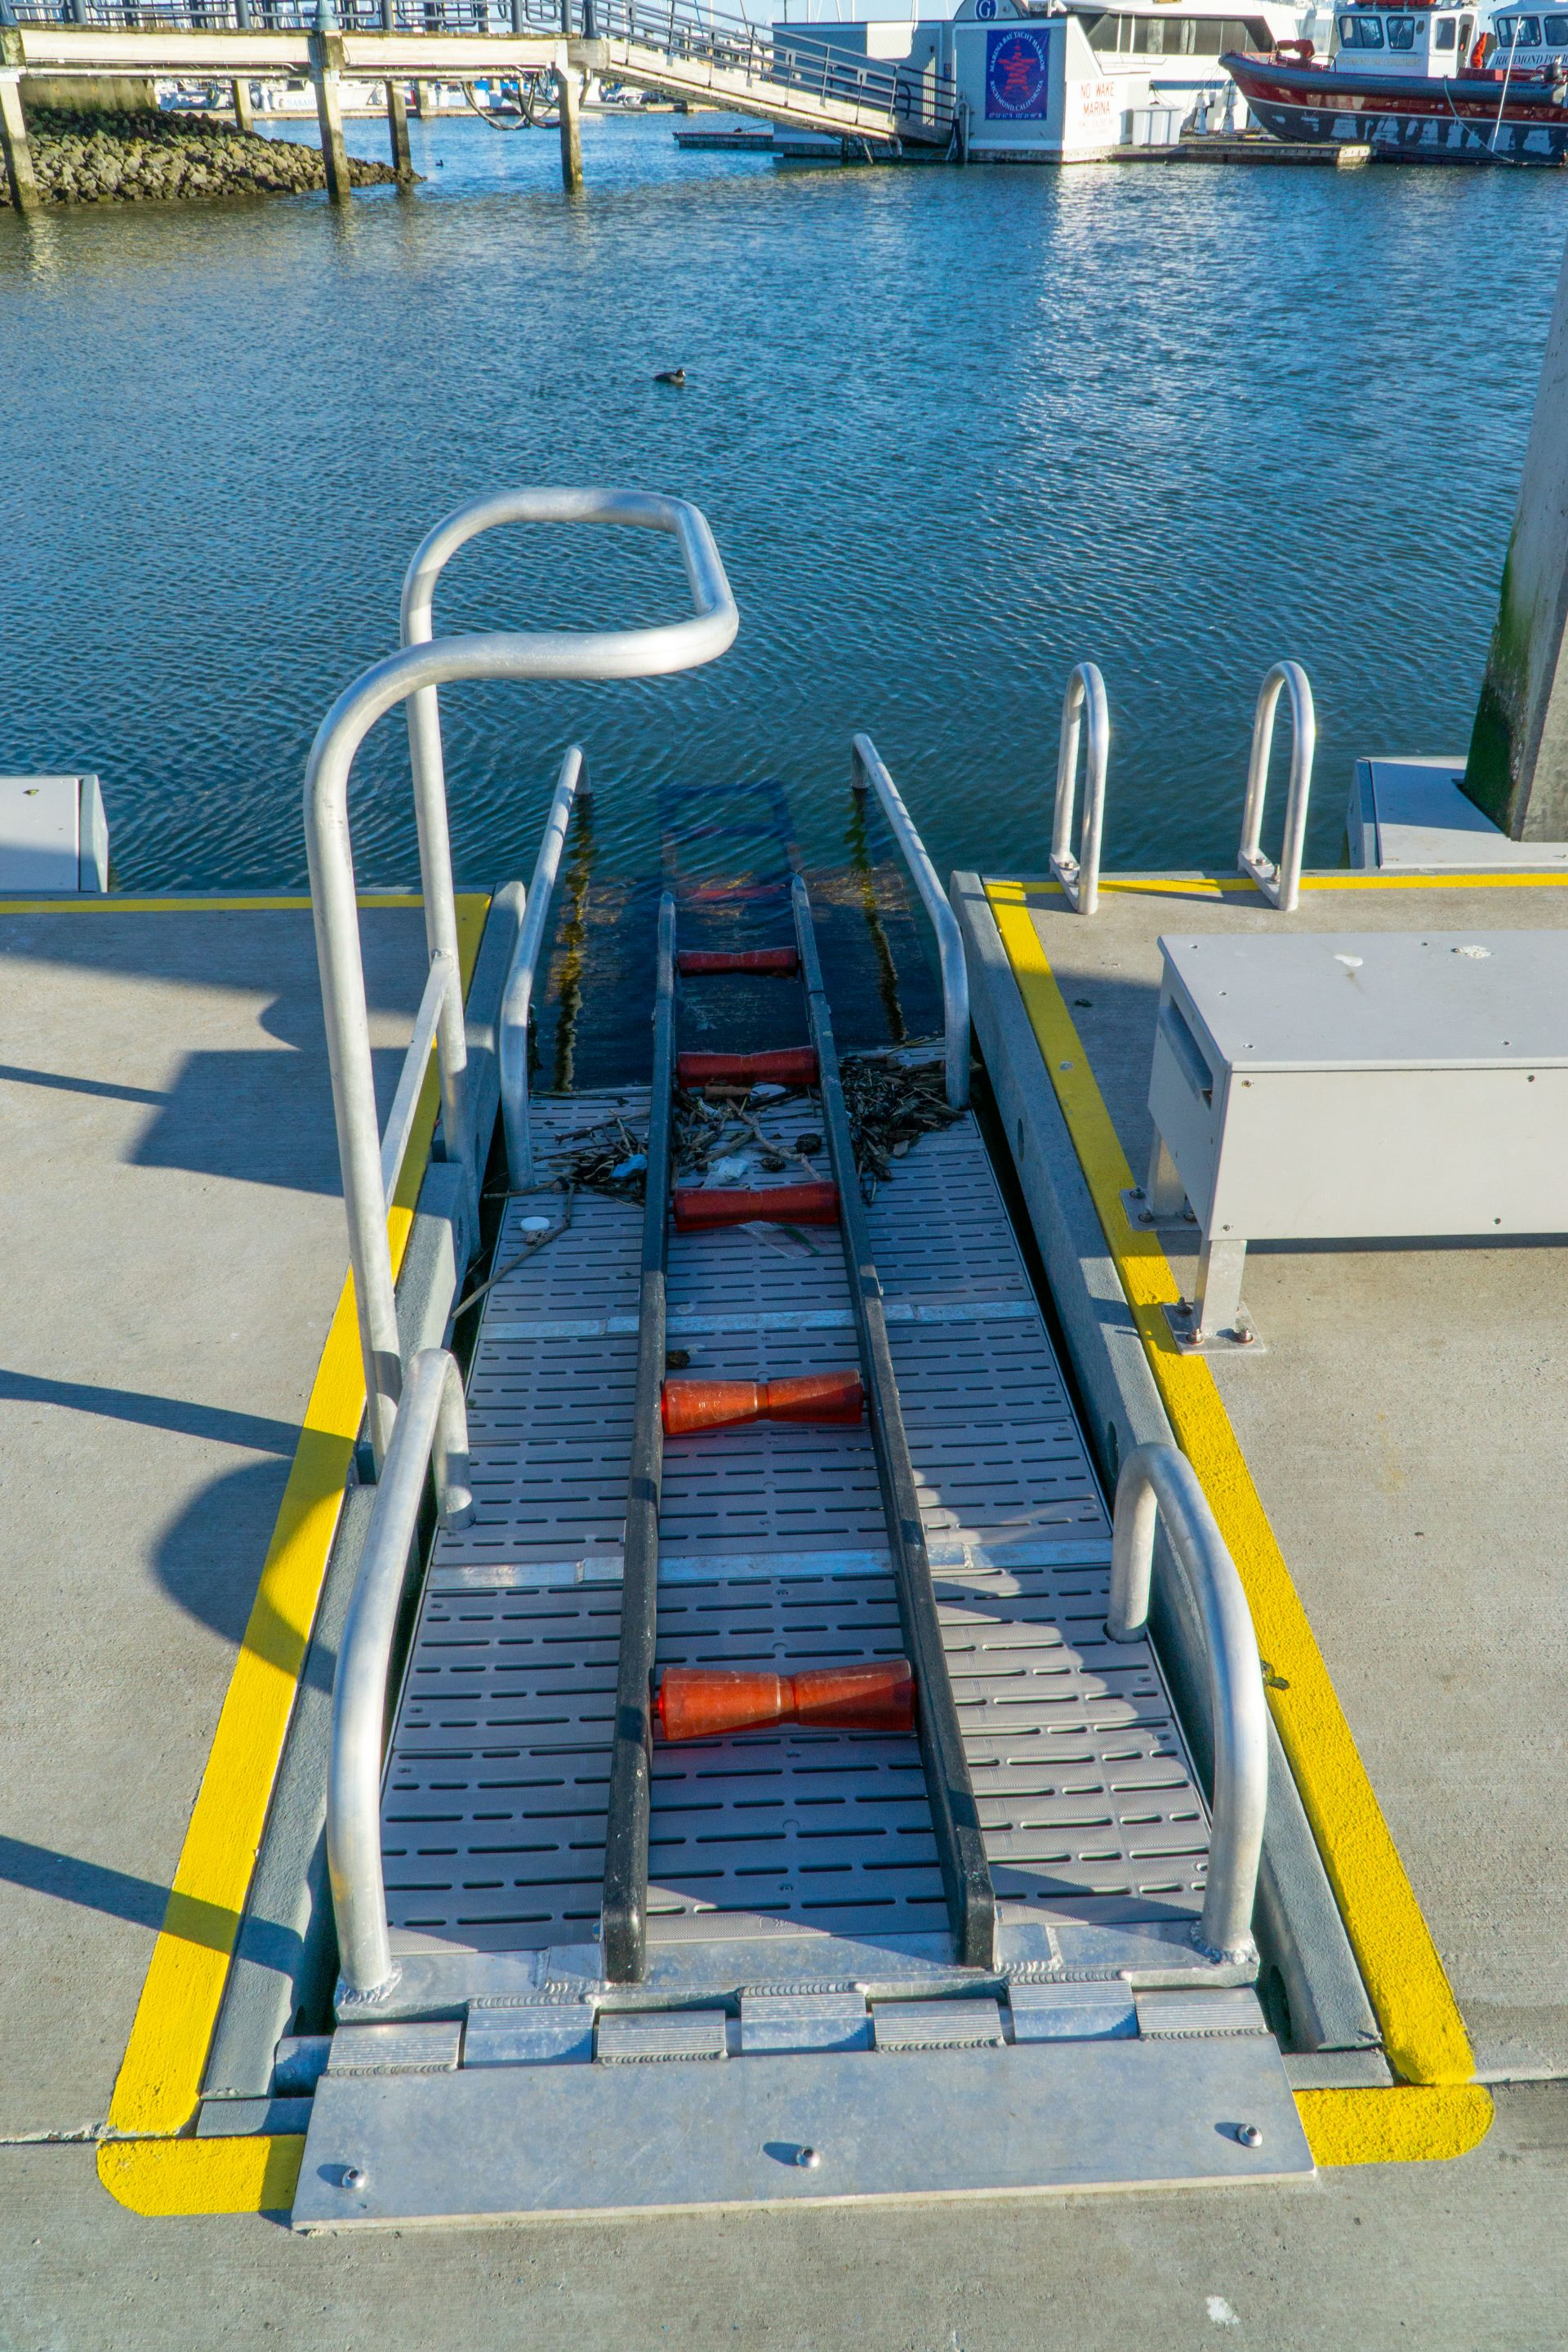 kayak-friendly pier with boat launch